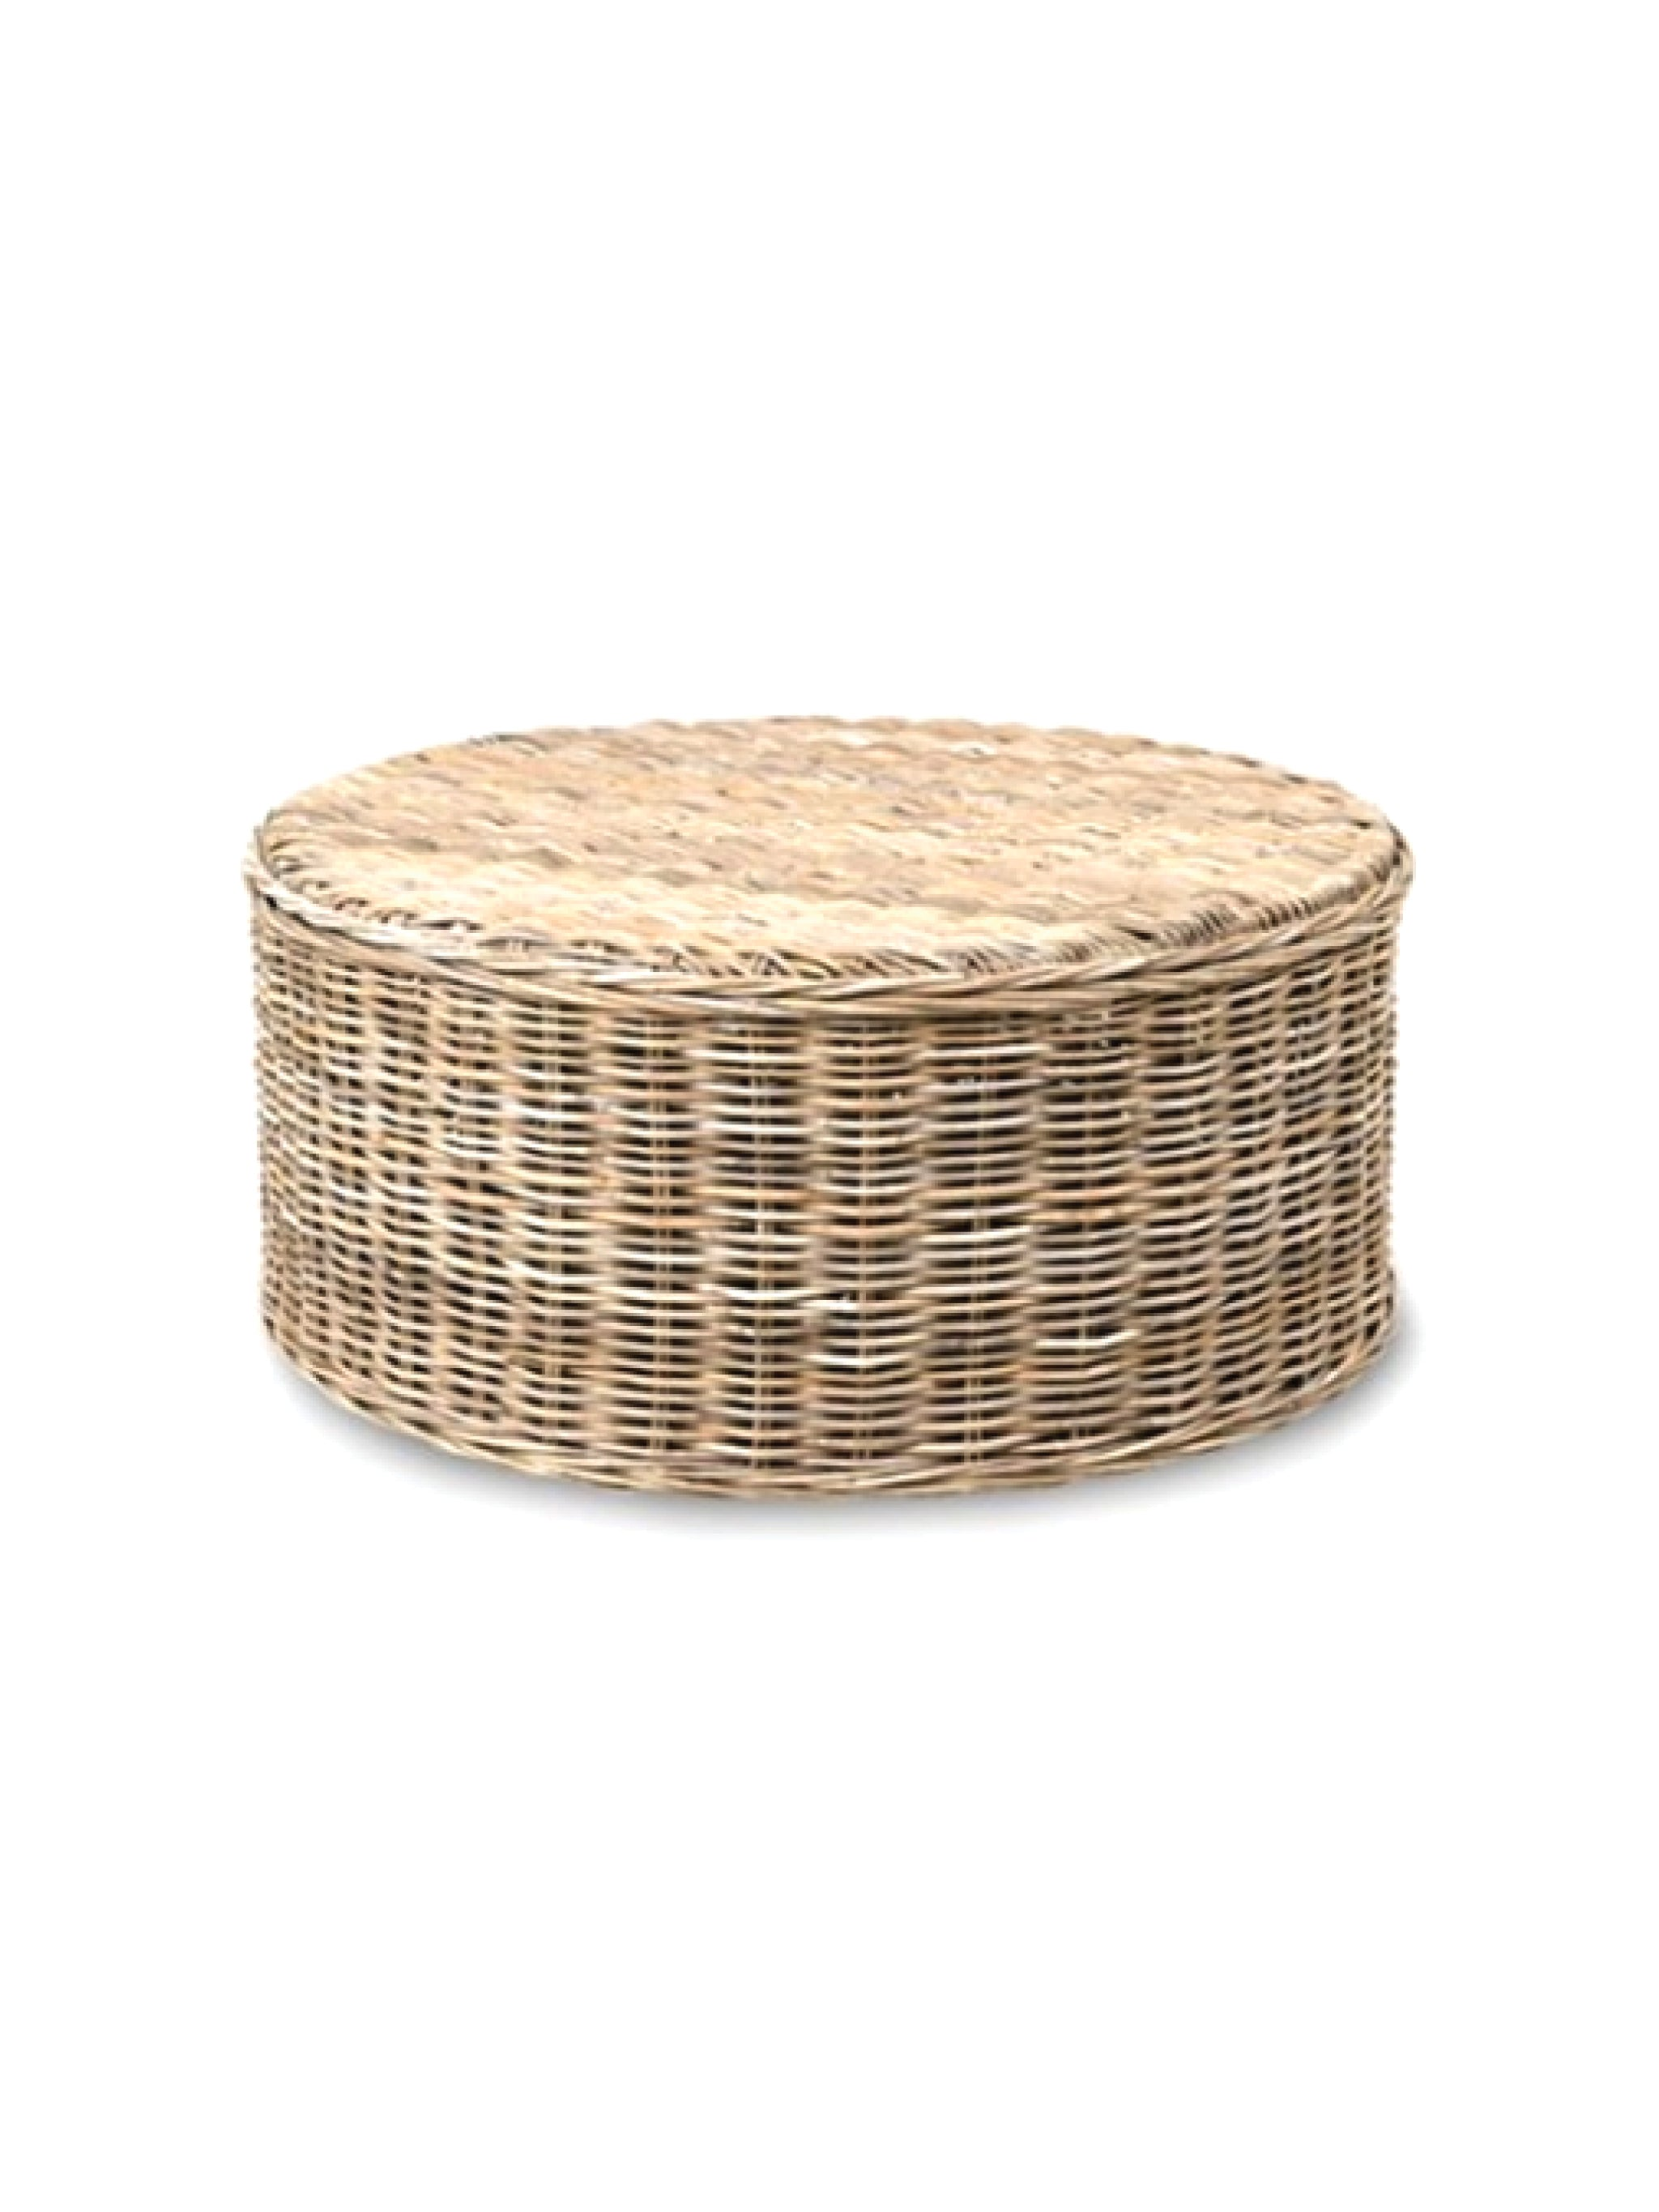 - Seascape Driftwood Rattan Round Coffee Table - Gray Apple Market